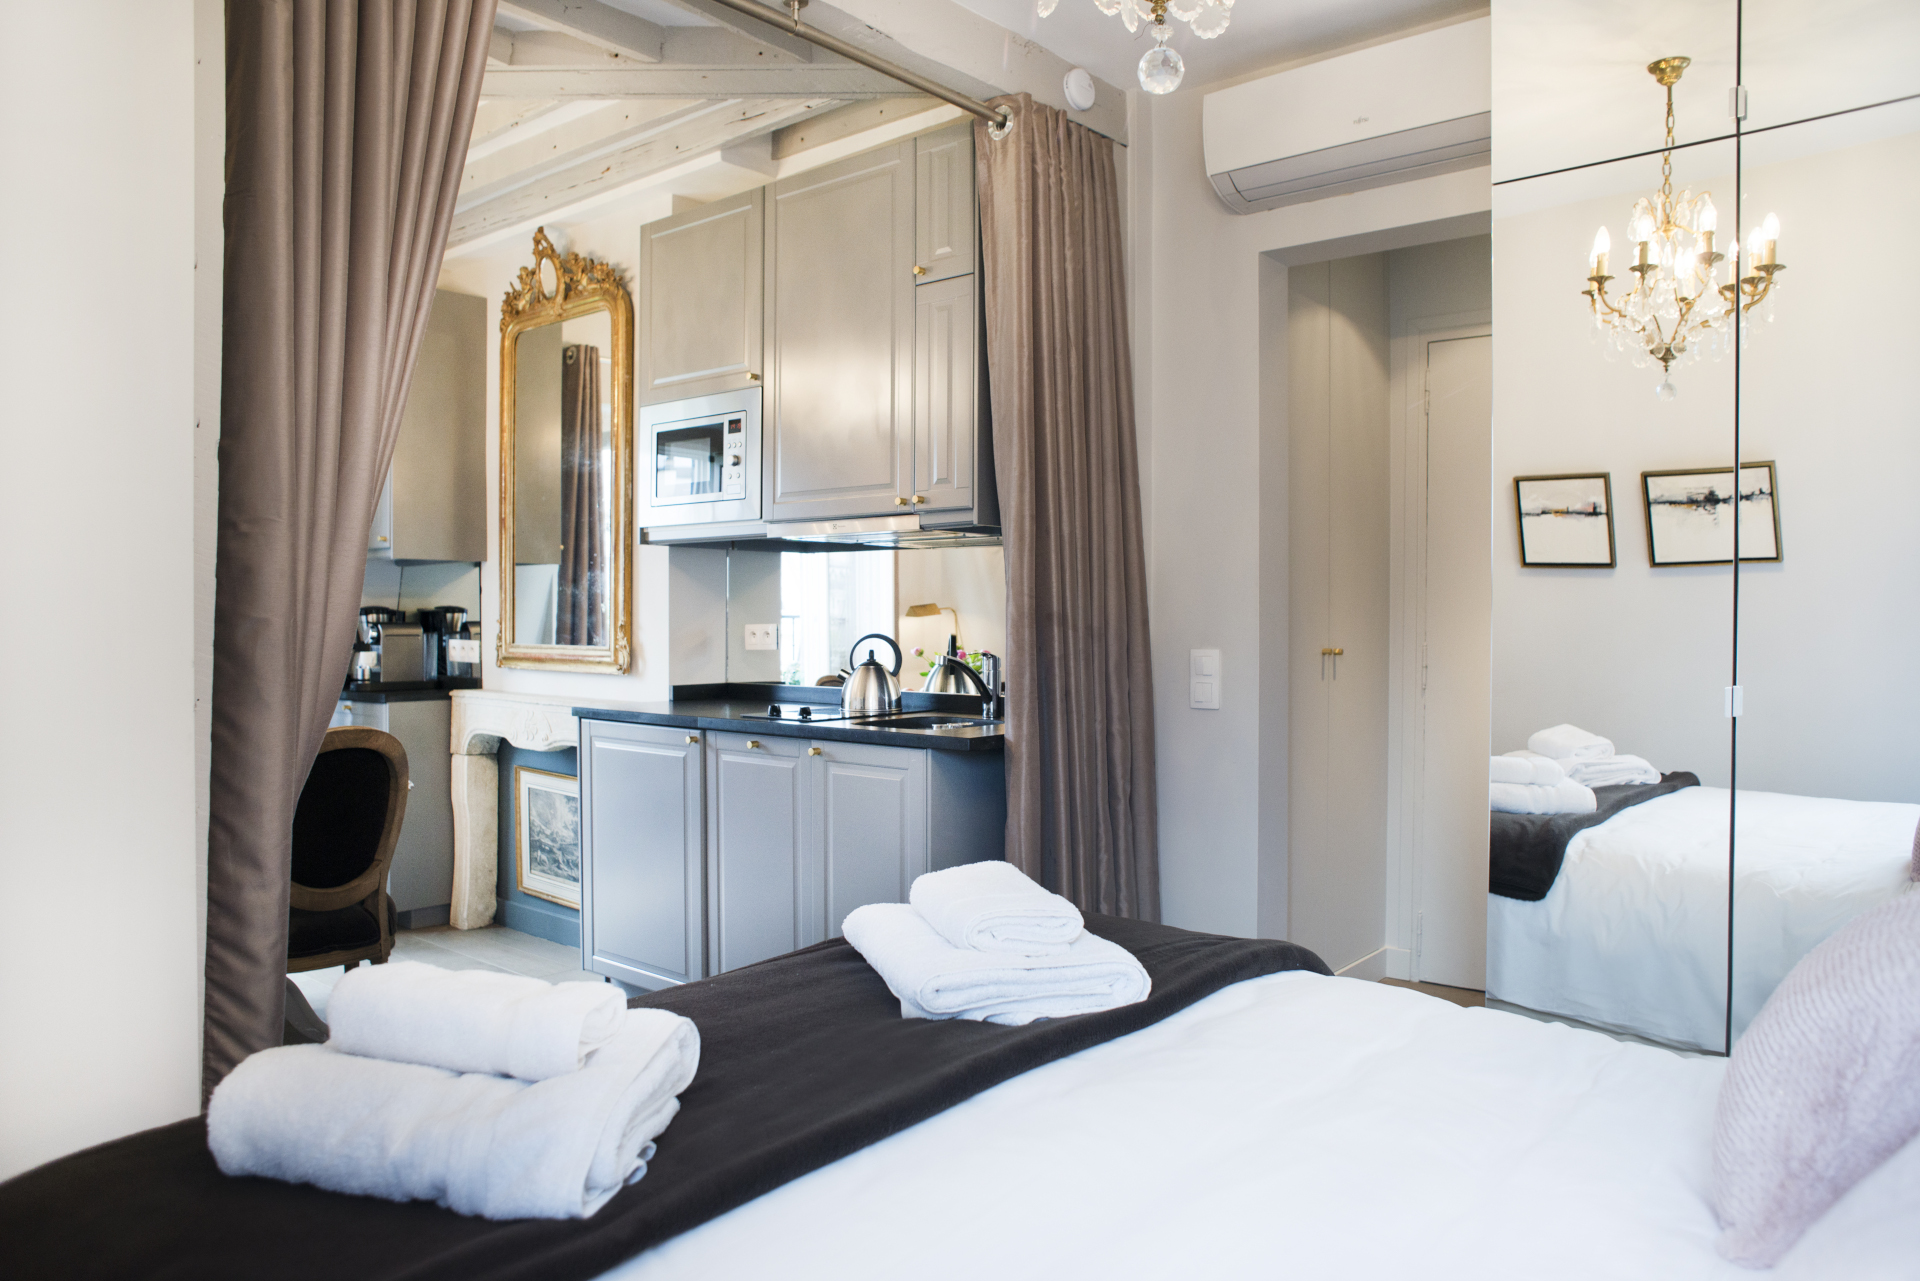 Sleeping area can be closed off by large curtains in the Cremant vacation rental